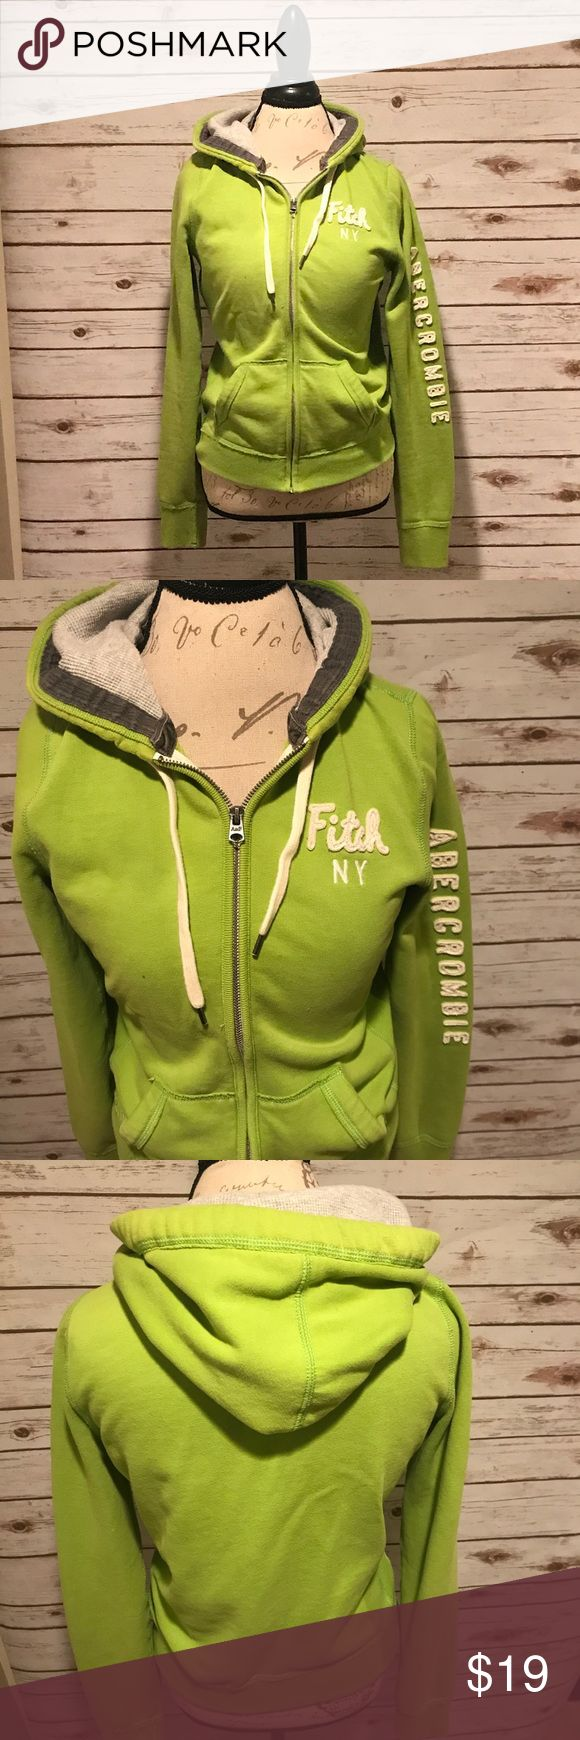 Abercrombie & Fitch Women's Zip-Up Hoodie Women's lime green zip up hoodie. Good condition. One small noticeable spot on front (see last photo) Size L Abercrombie & Fitch Tops Sweatshirts & Hoodies